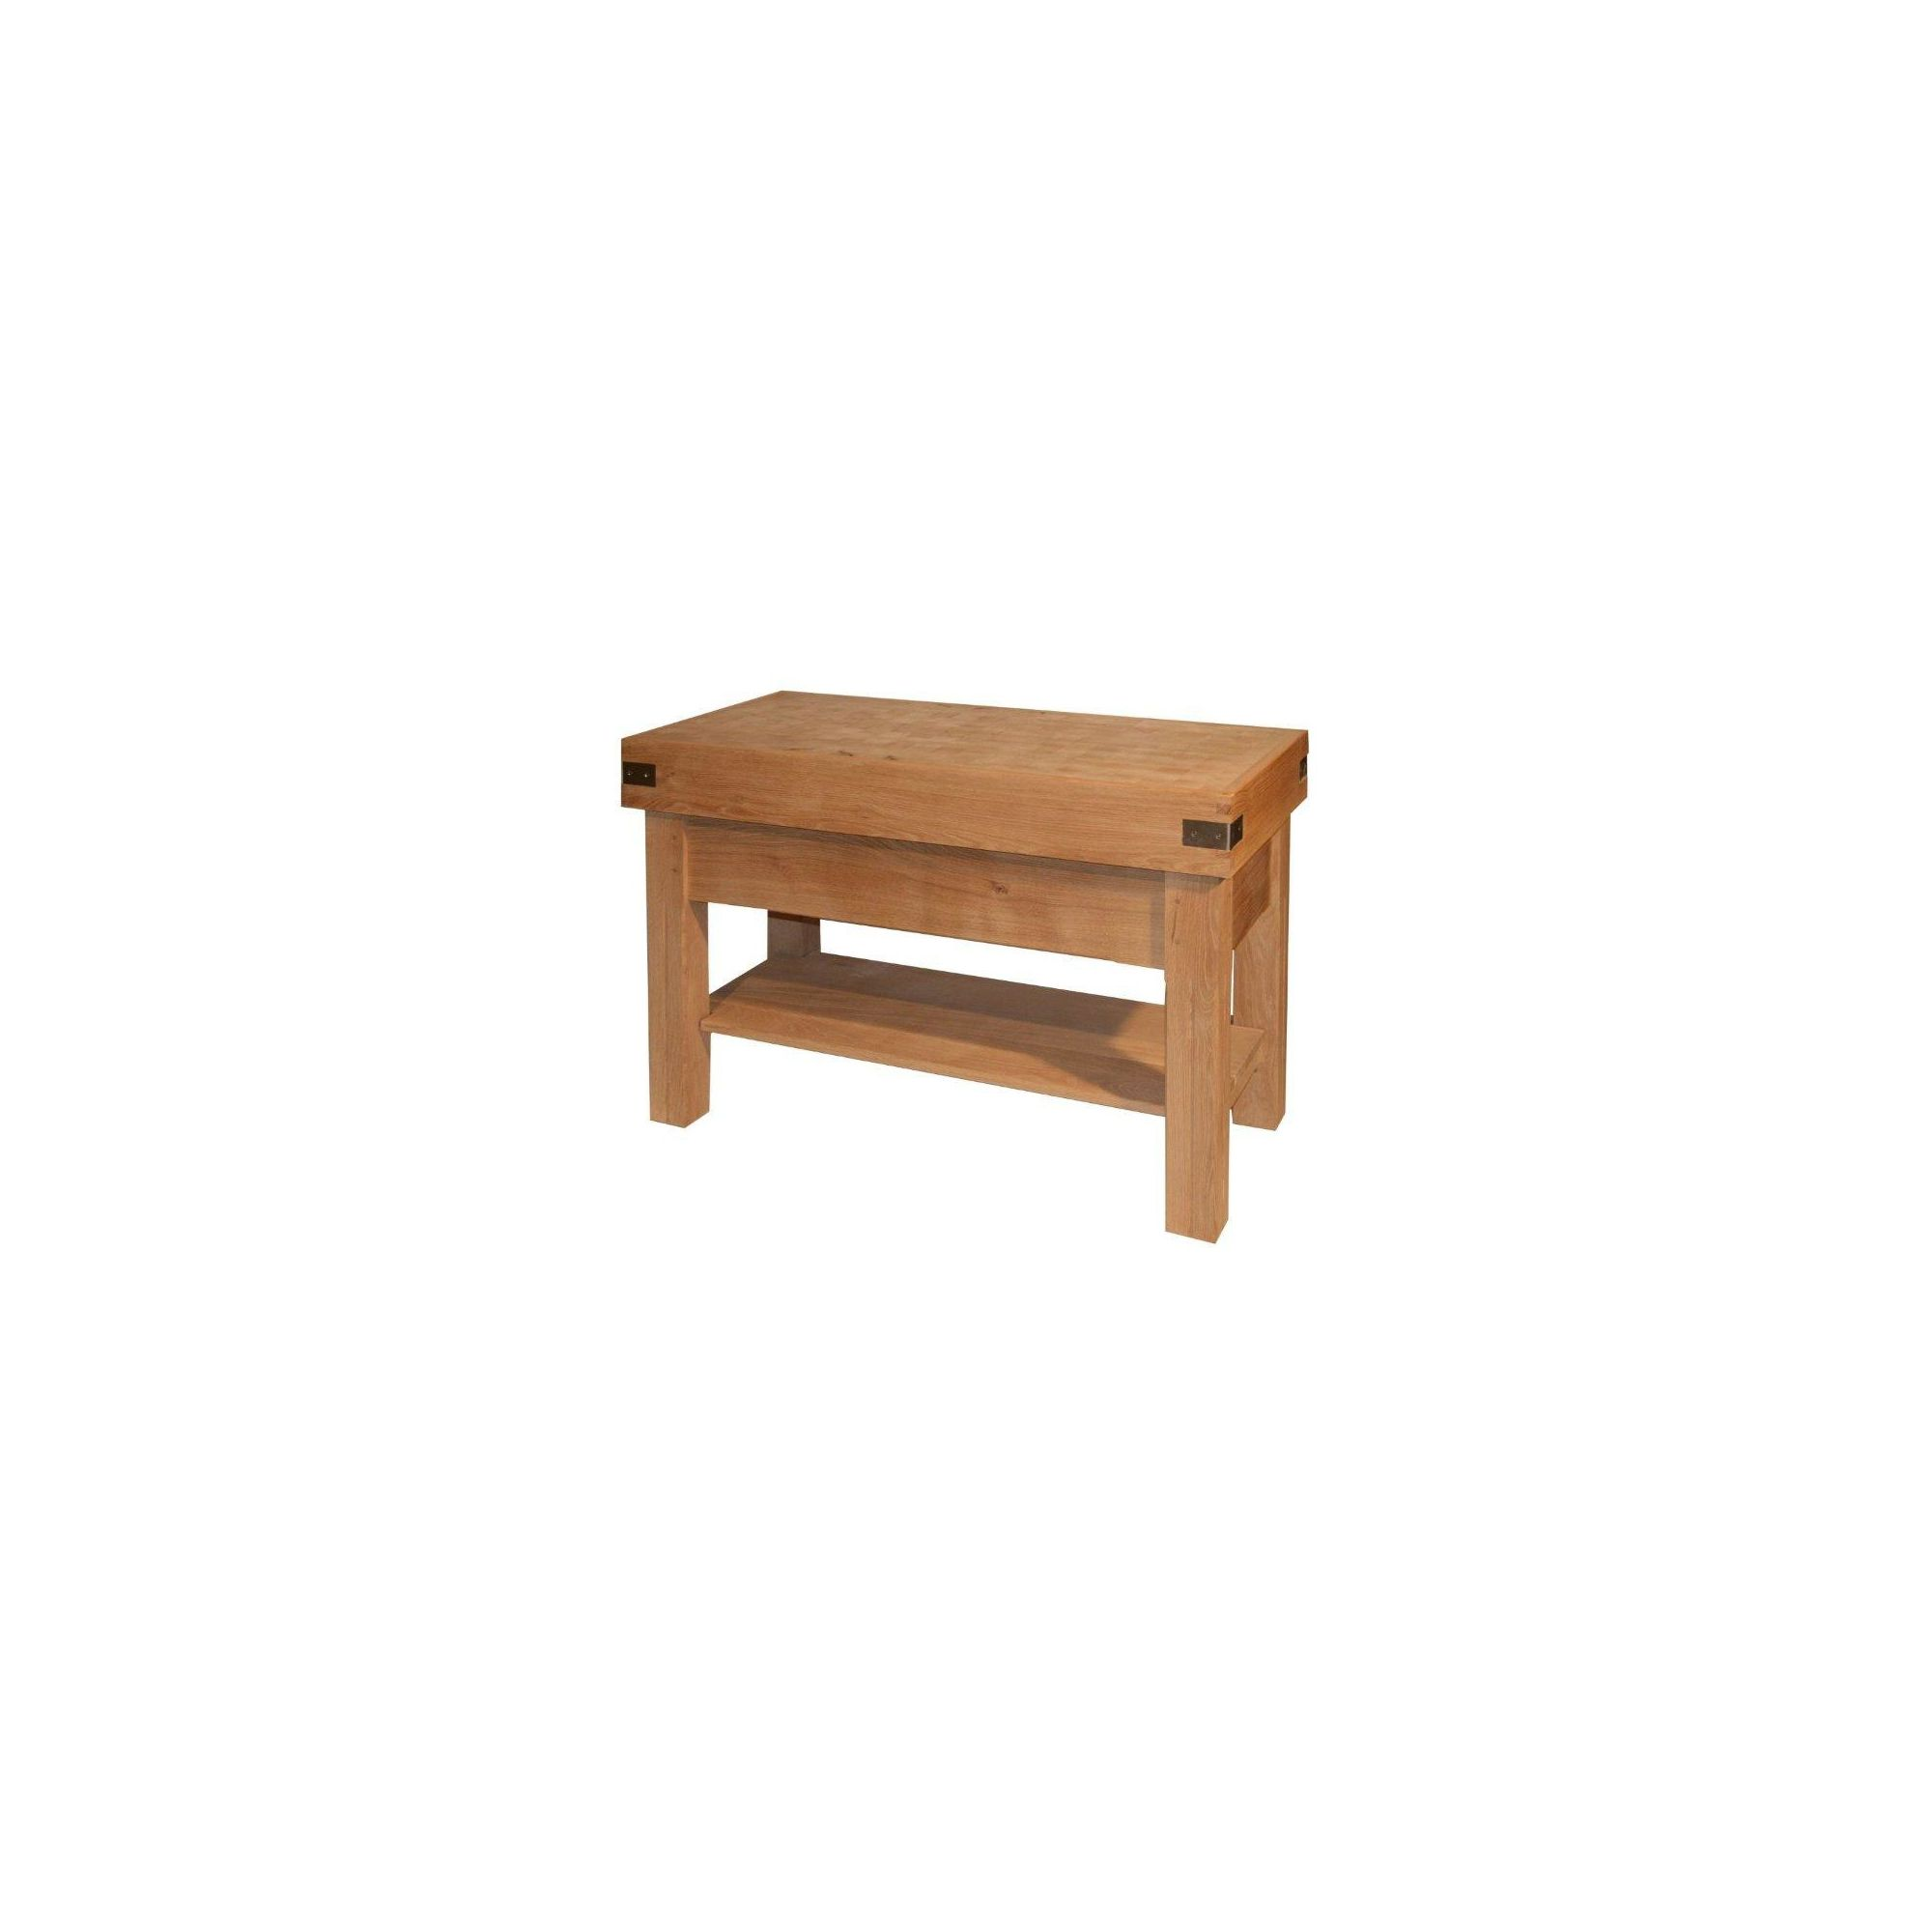 Chabret Traditional Kitchen Island Block - 85cm X 100cm X 60cm at Tesco Direct